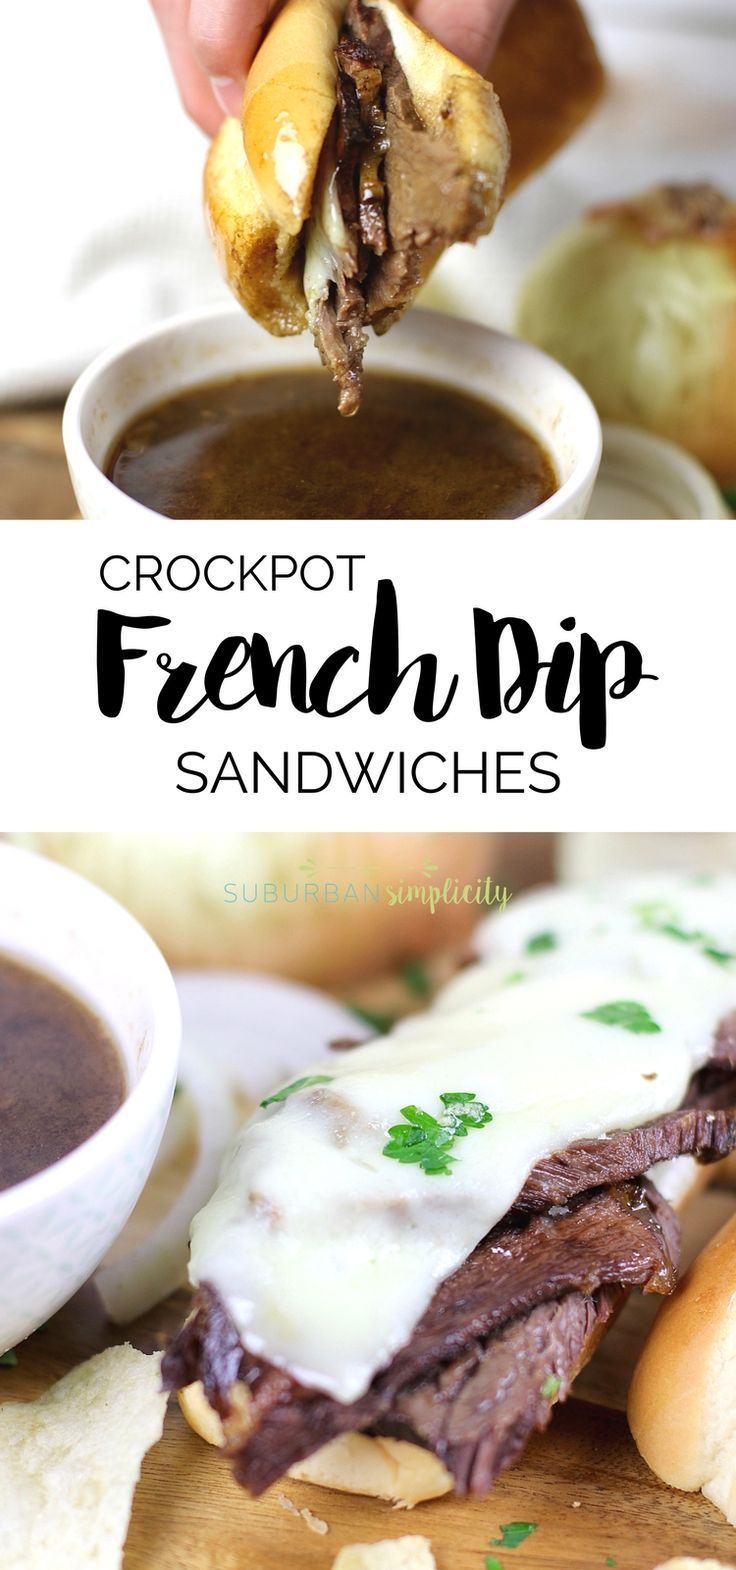 Crockpot French Dip Sandwiches are an easy dinner idea that you'll fall in love with. Tender beef atop a toasted sandwich roll with an incredibly delicious dipping sauce make this slow cooker recipe a winner! #crockpotrecipe #slowcookerrecipe via @https://www.pinterest.com/Erin_Simplicity/